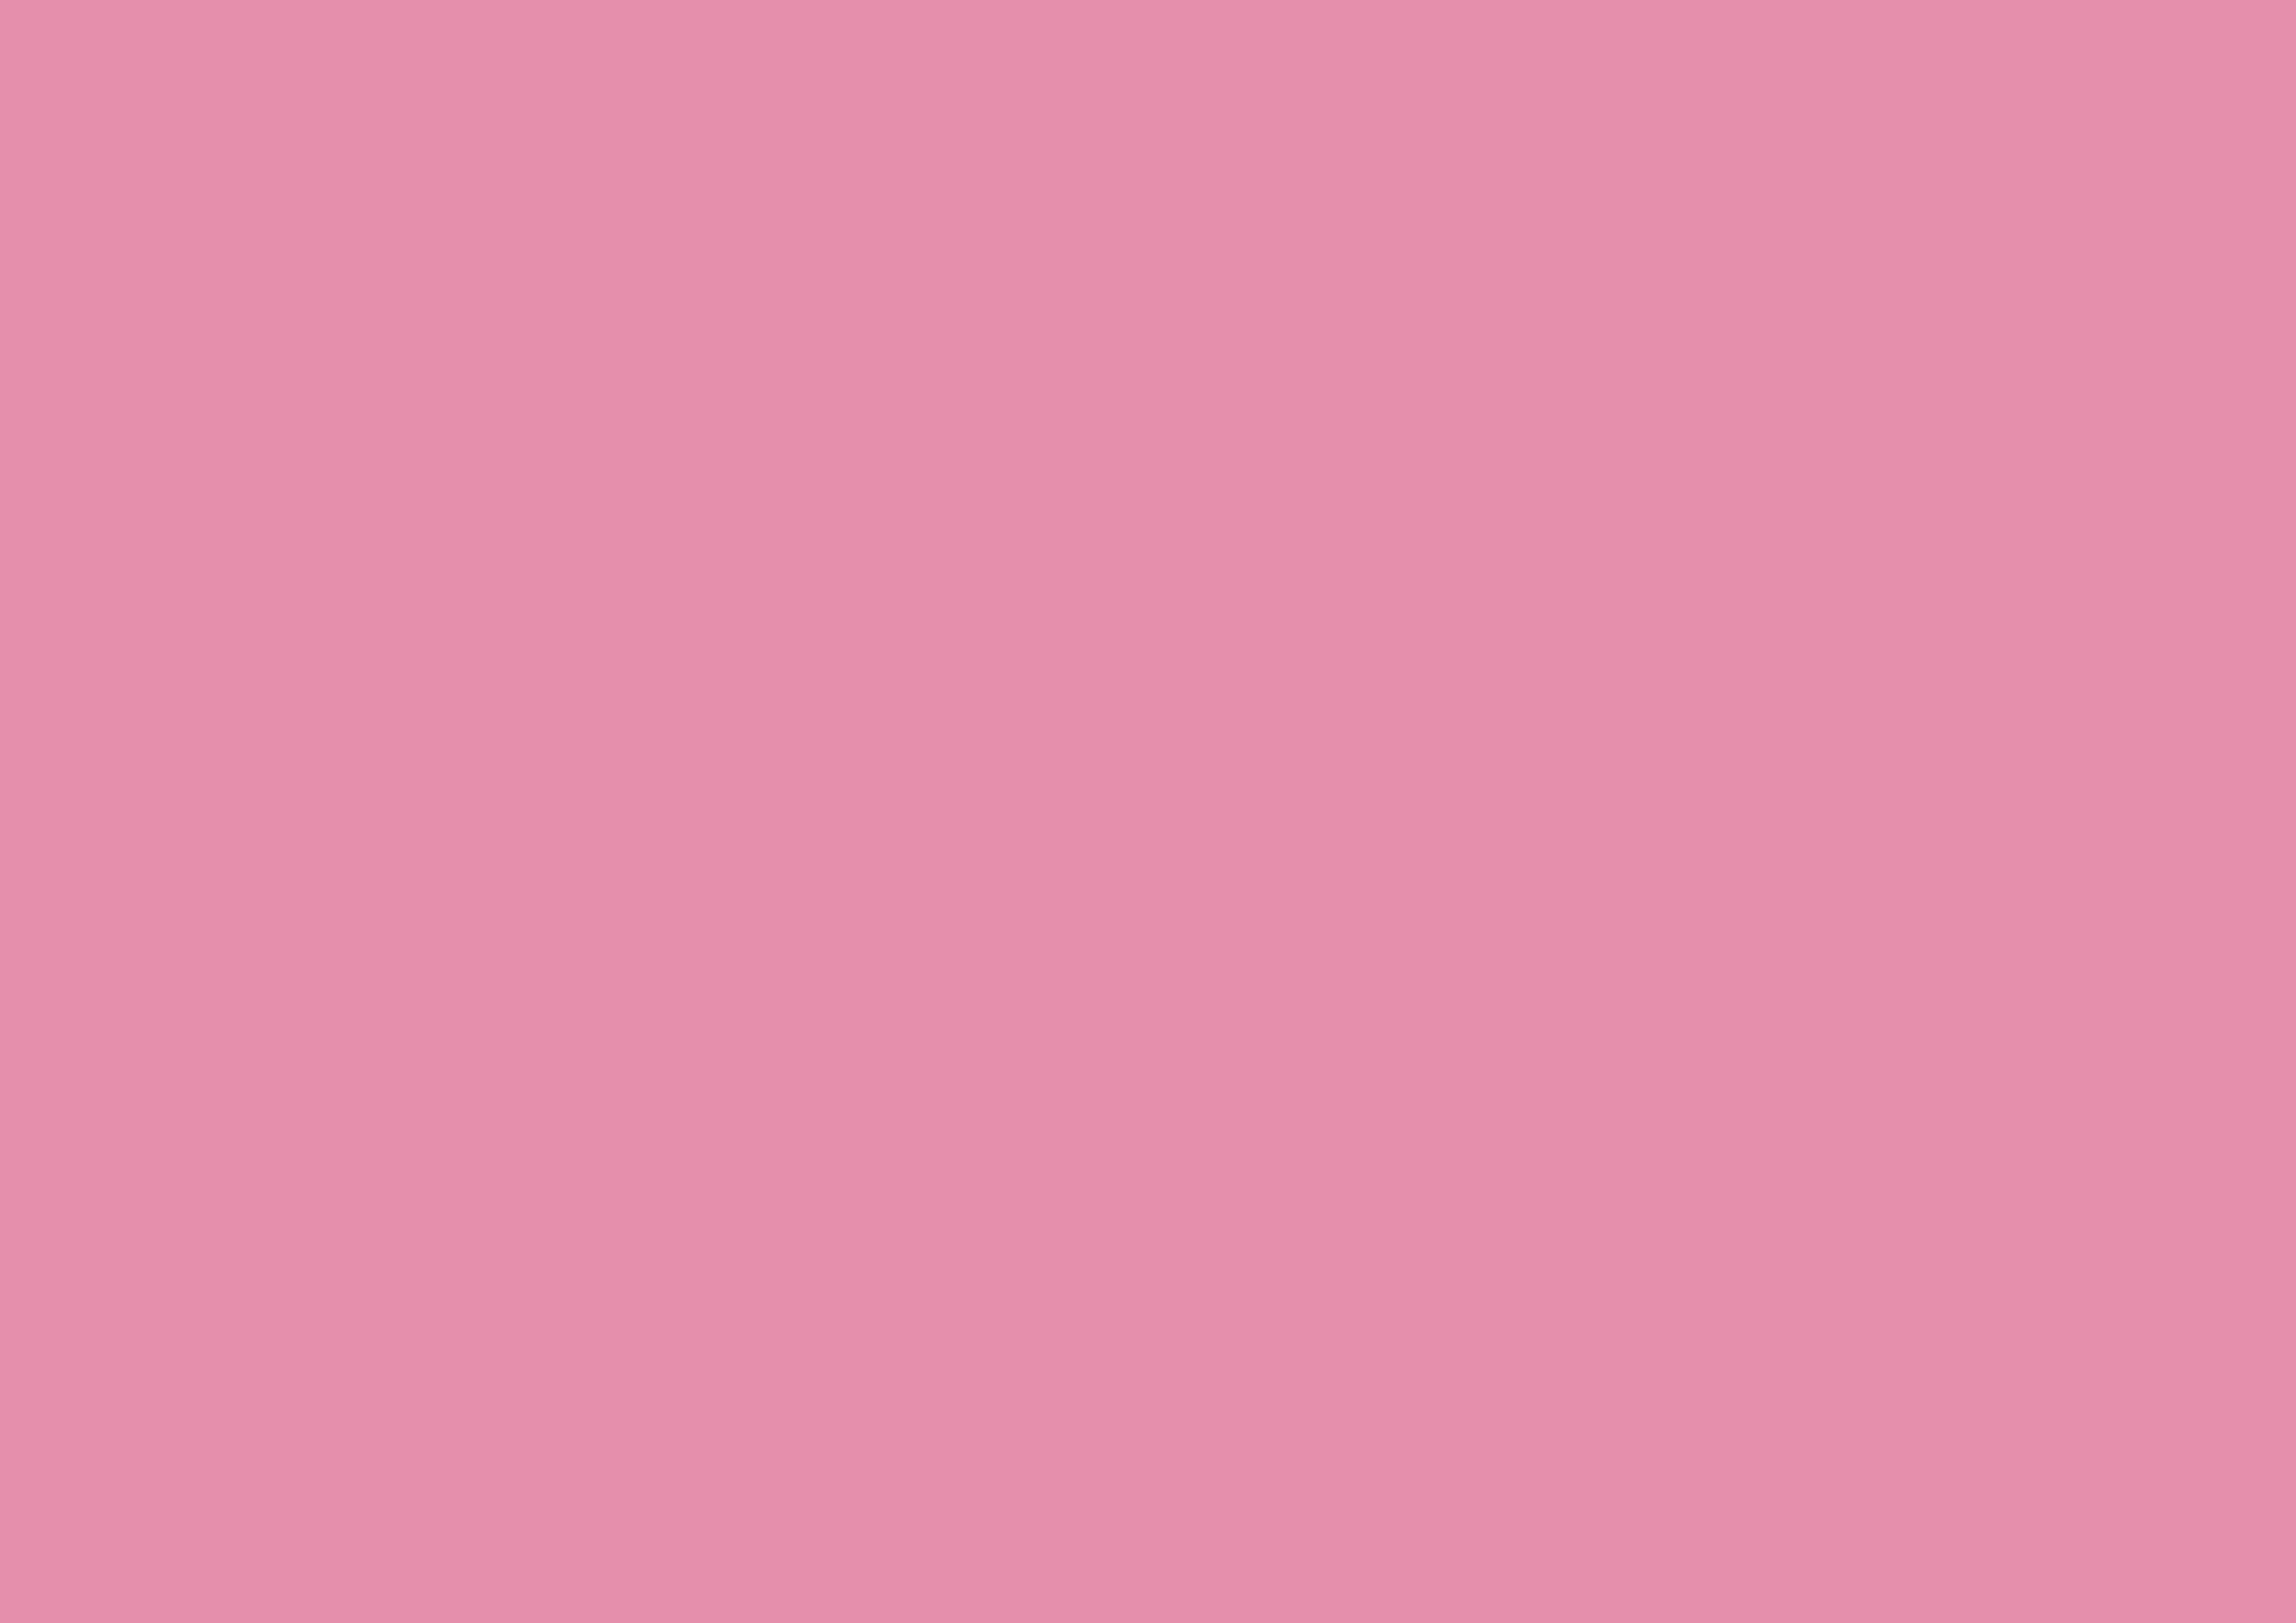 3508x2480 Charm Pink Solid Color Background